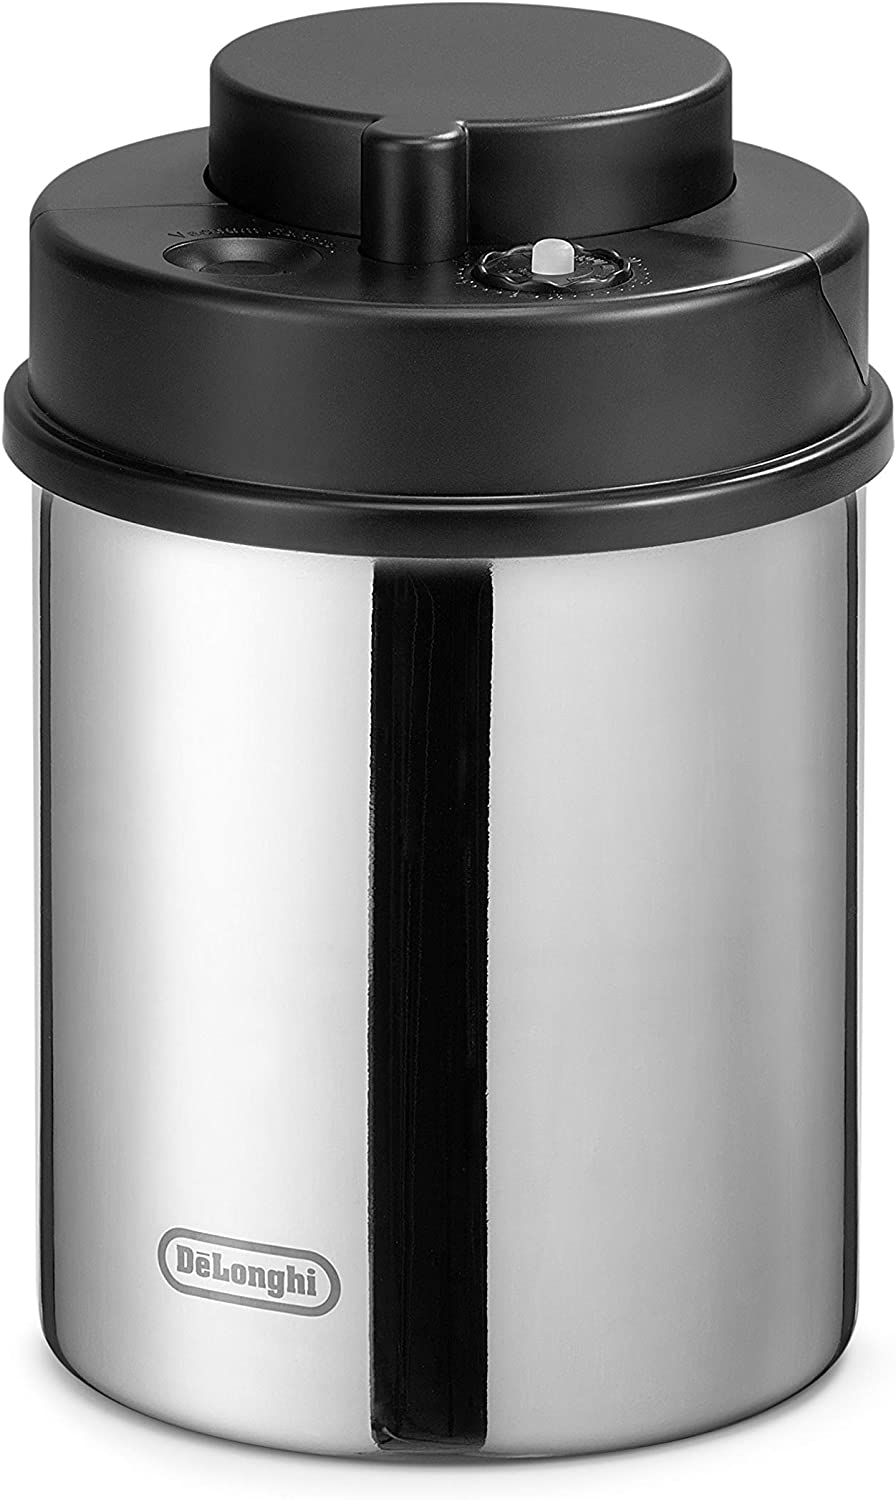 De'Longhi Coffee Canister, Vacuum Sealed Food Storage Container with Airtight Lid & Built-in Date Indicator, Polished Stainless Steel (Holds 1 LB / 500 g), DLSC063